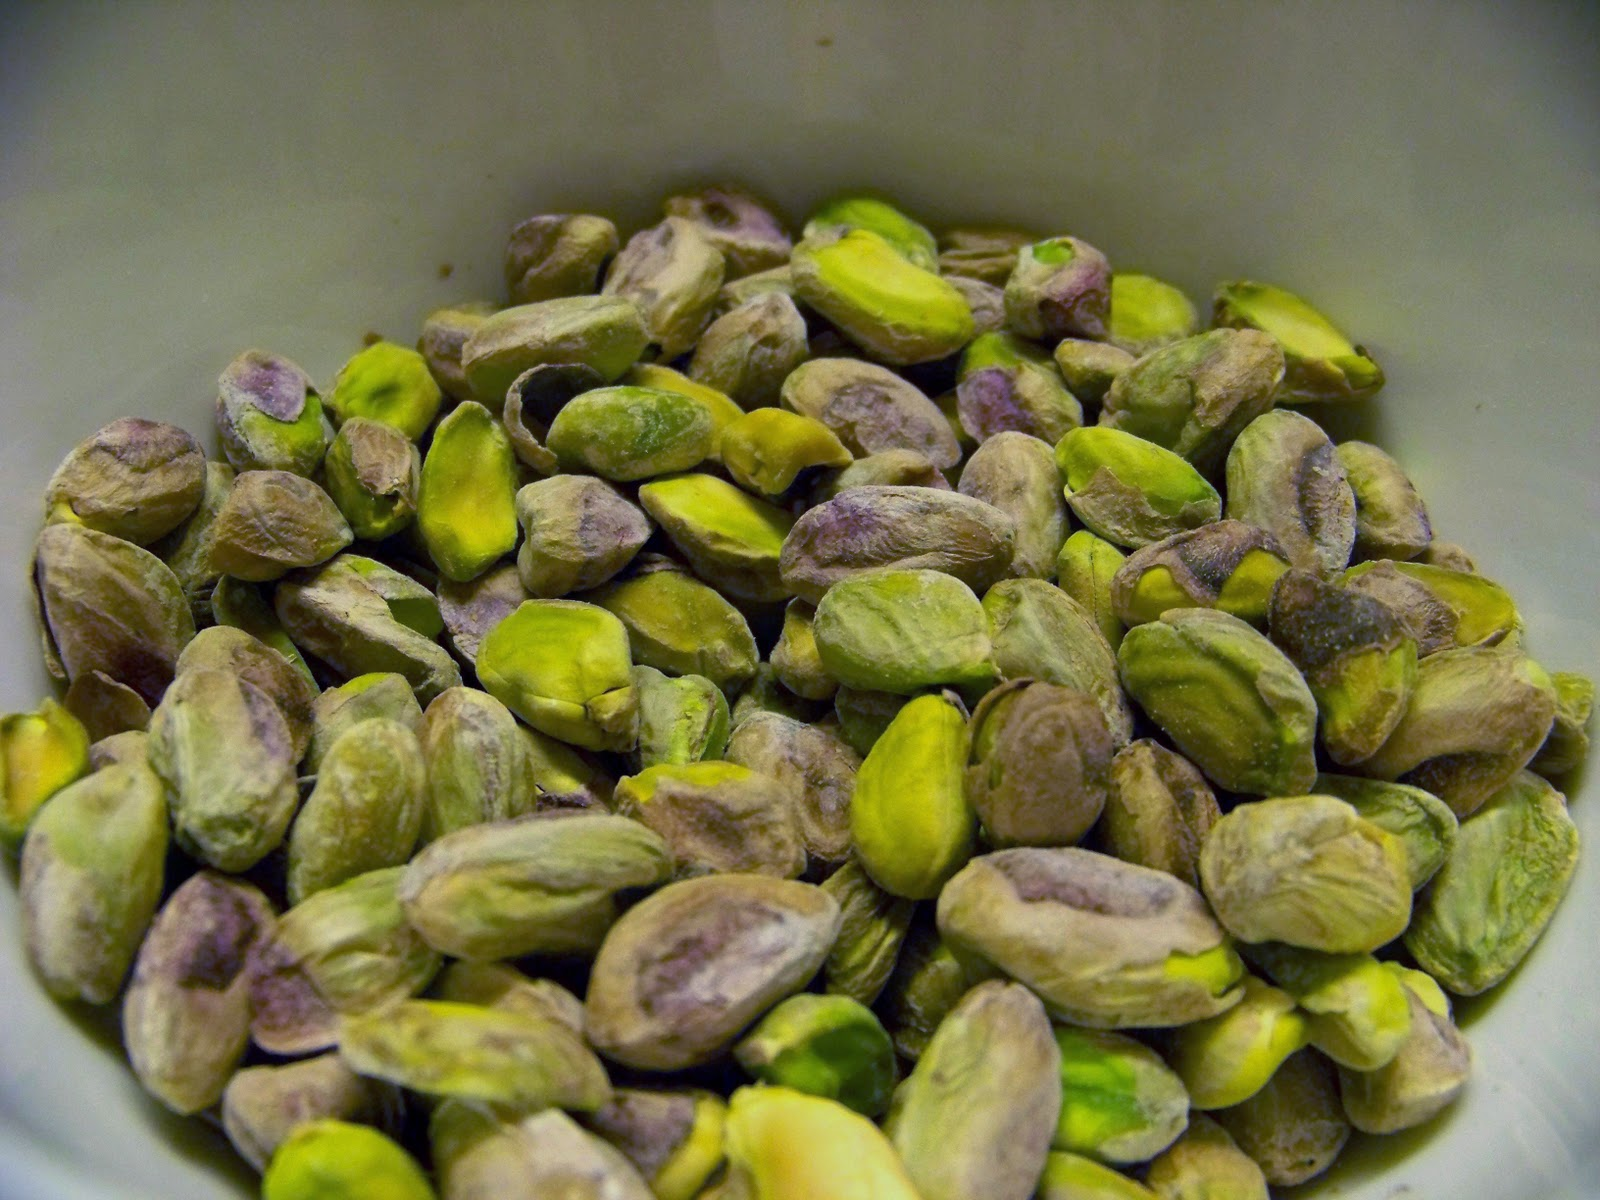 and pistachios.